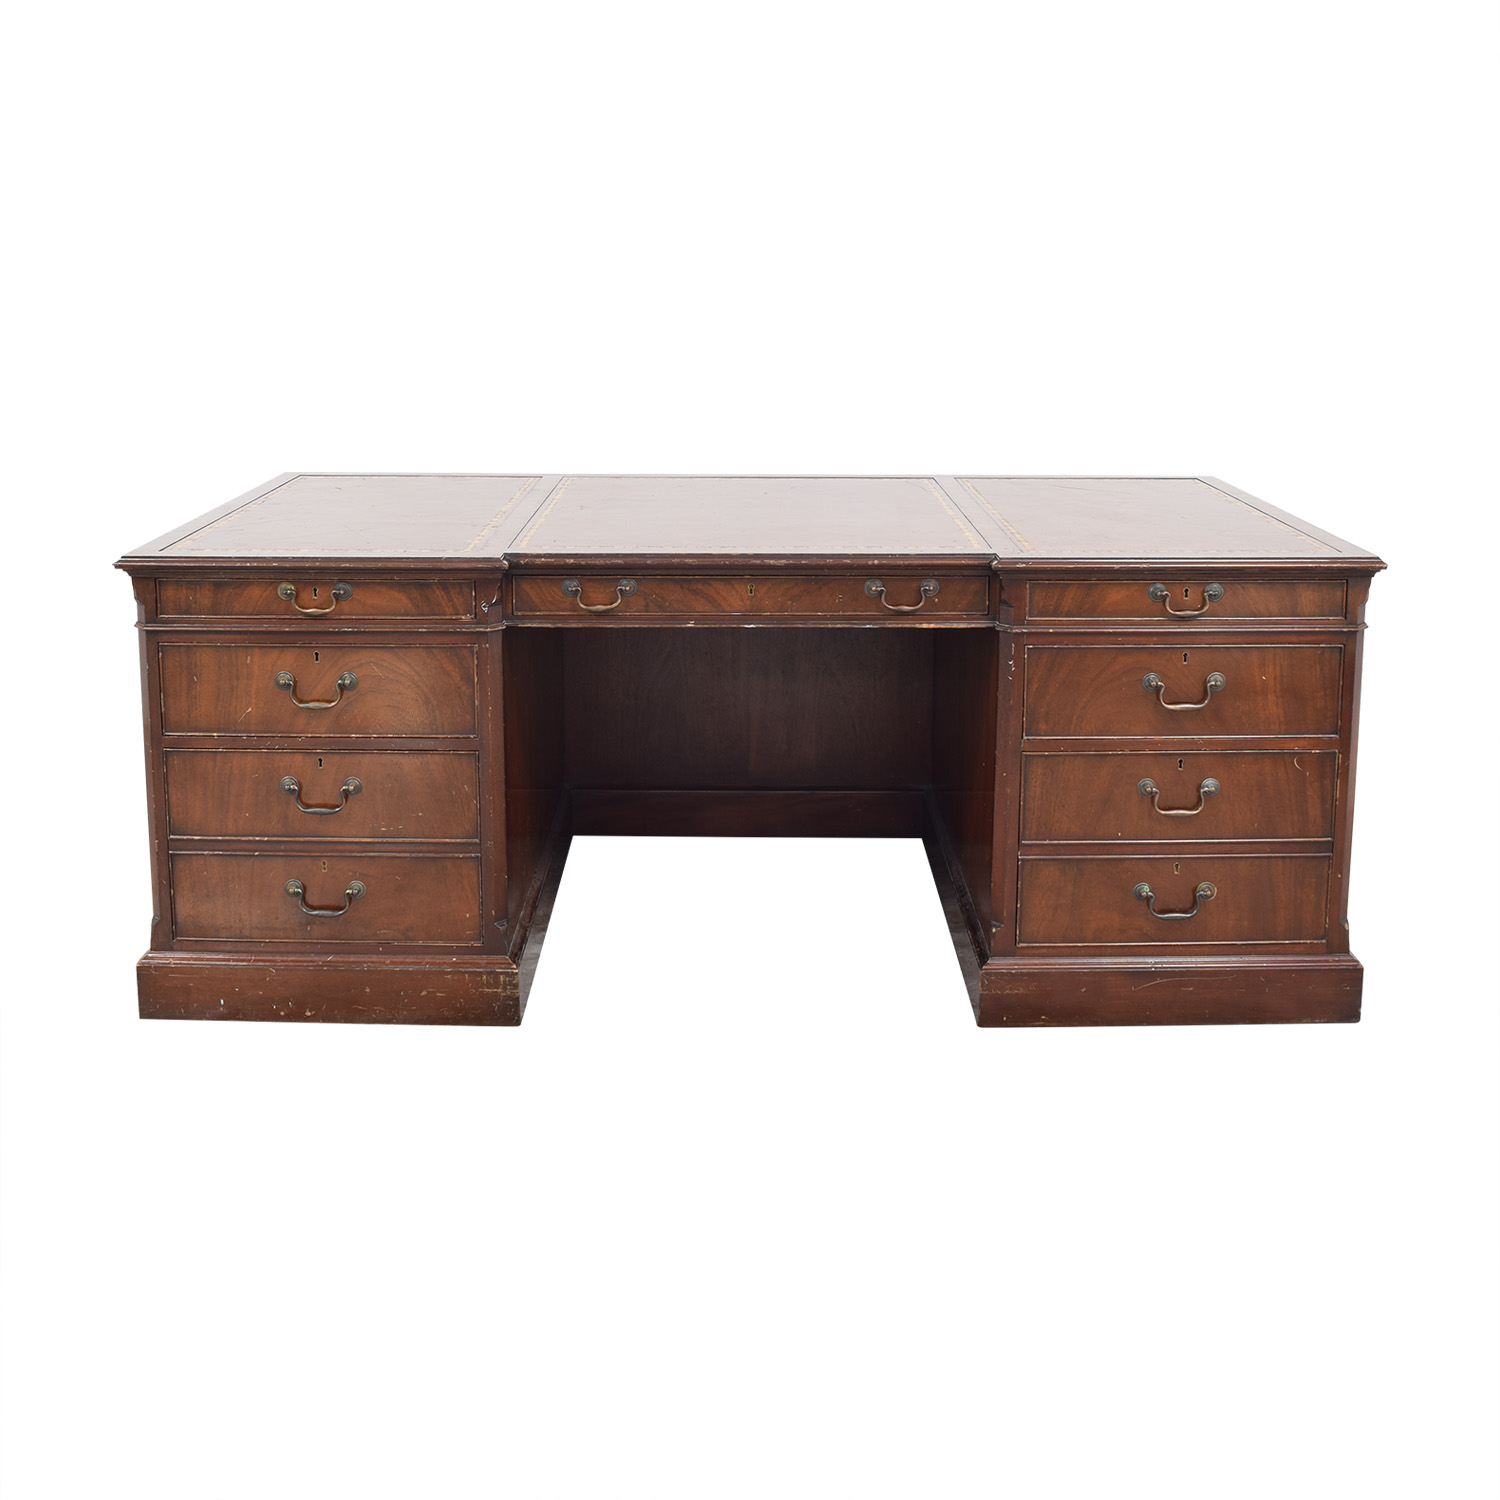 Vintage Executive Desk dimensions